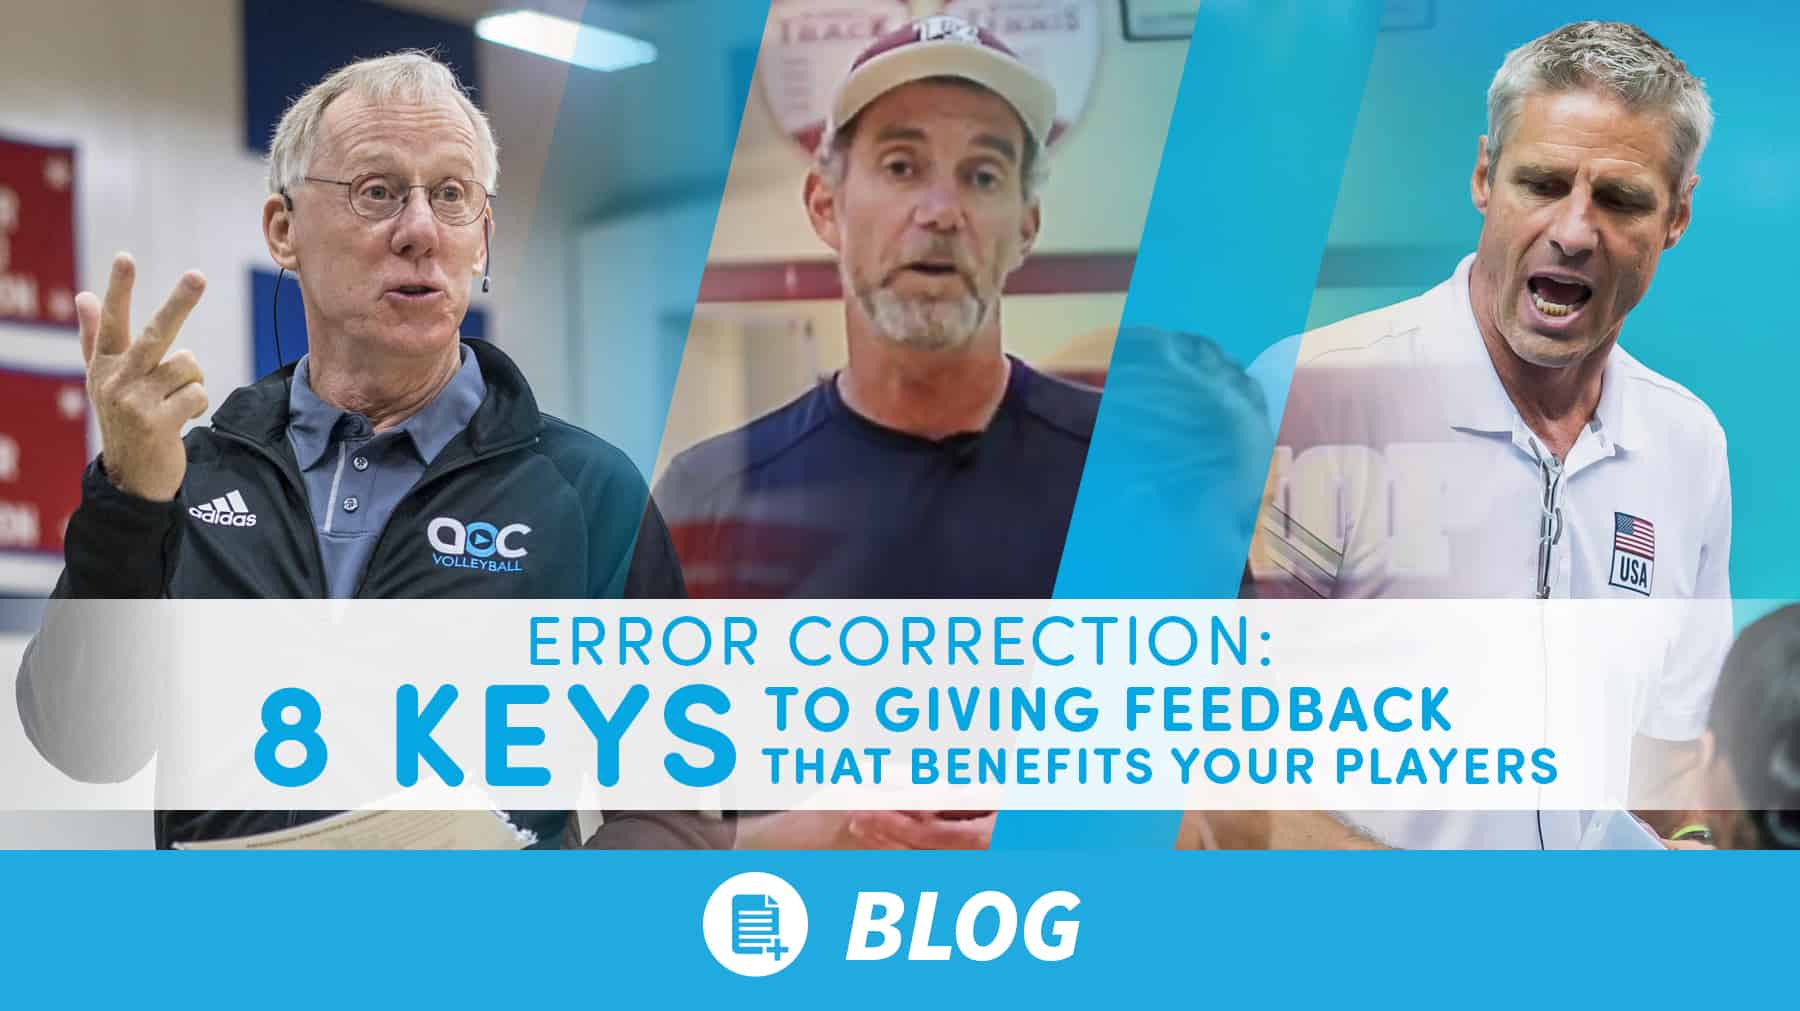 Error correction: 8 keys to giving feedback that benefits your players